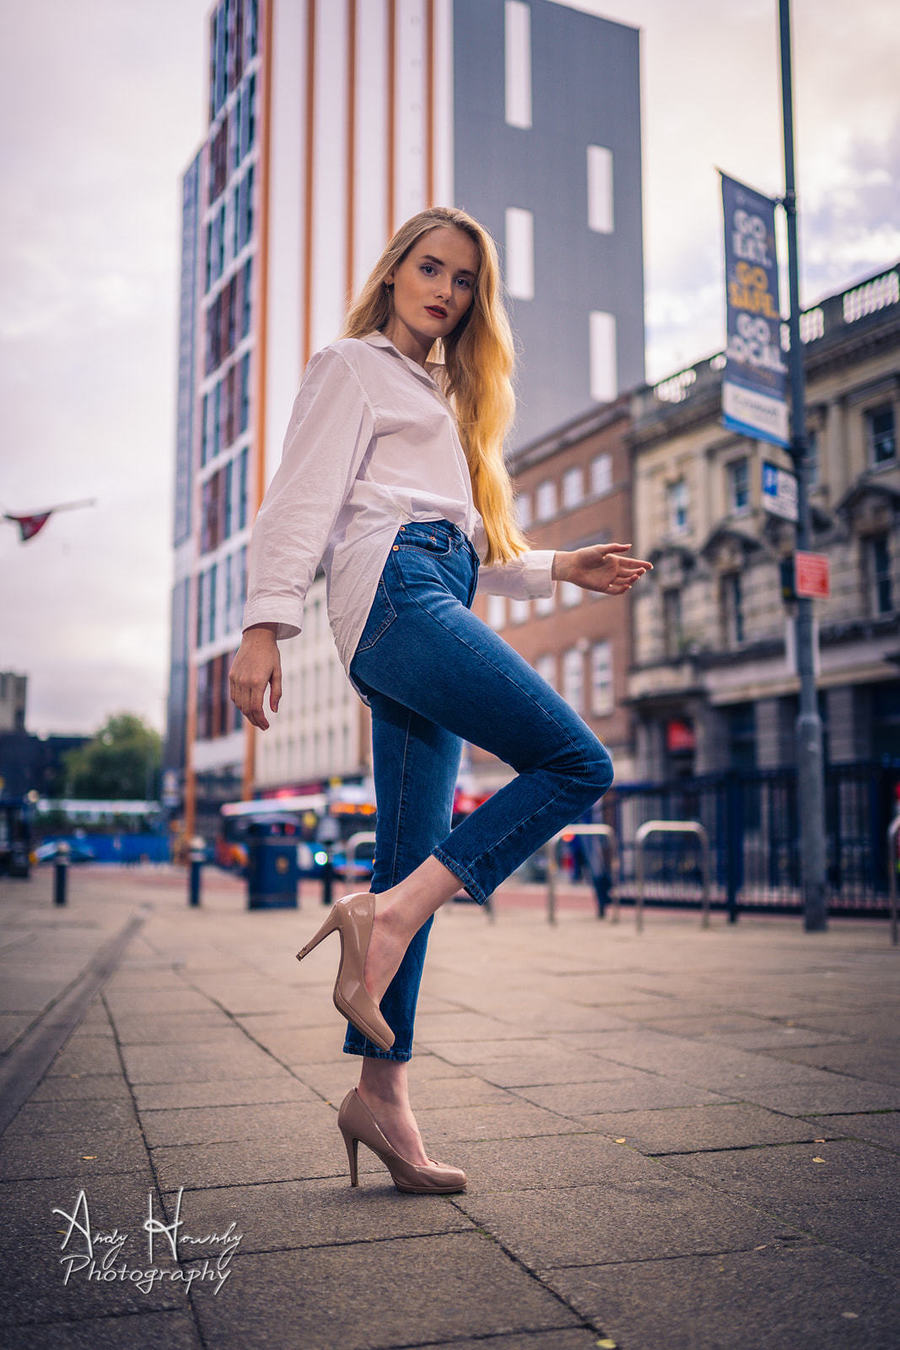 City Girl / Photography by Andy Hornby, Model Saffron Whyton / Uploaded 14th October 2021 @ 12:31 PM